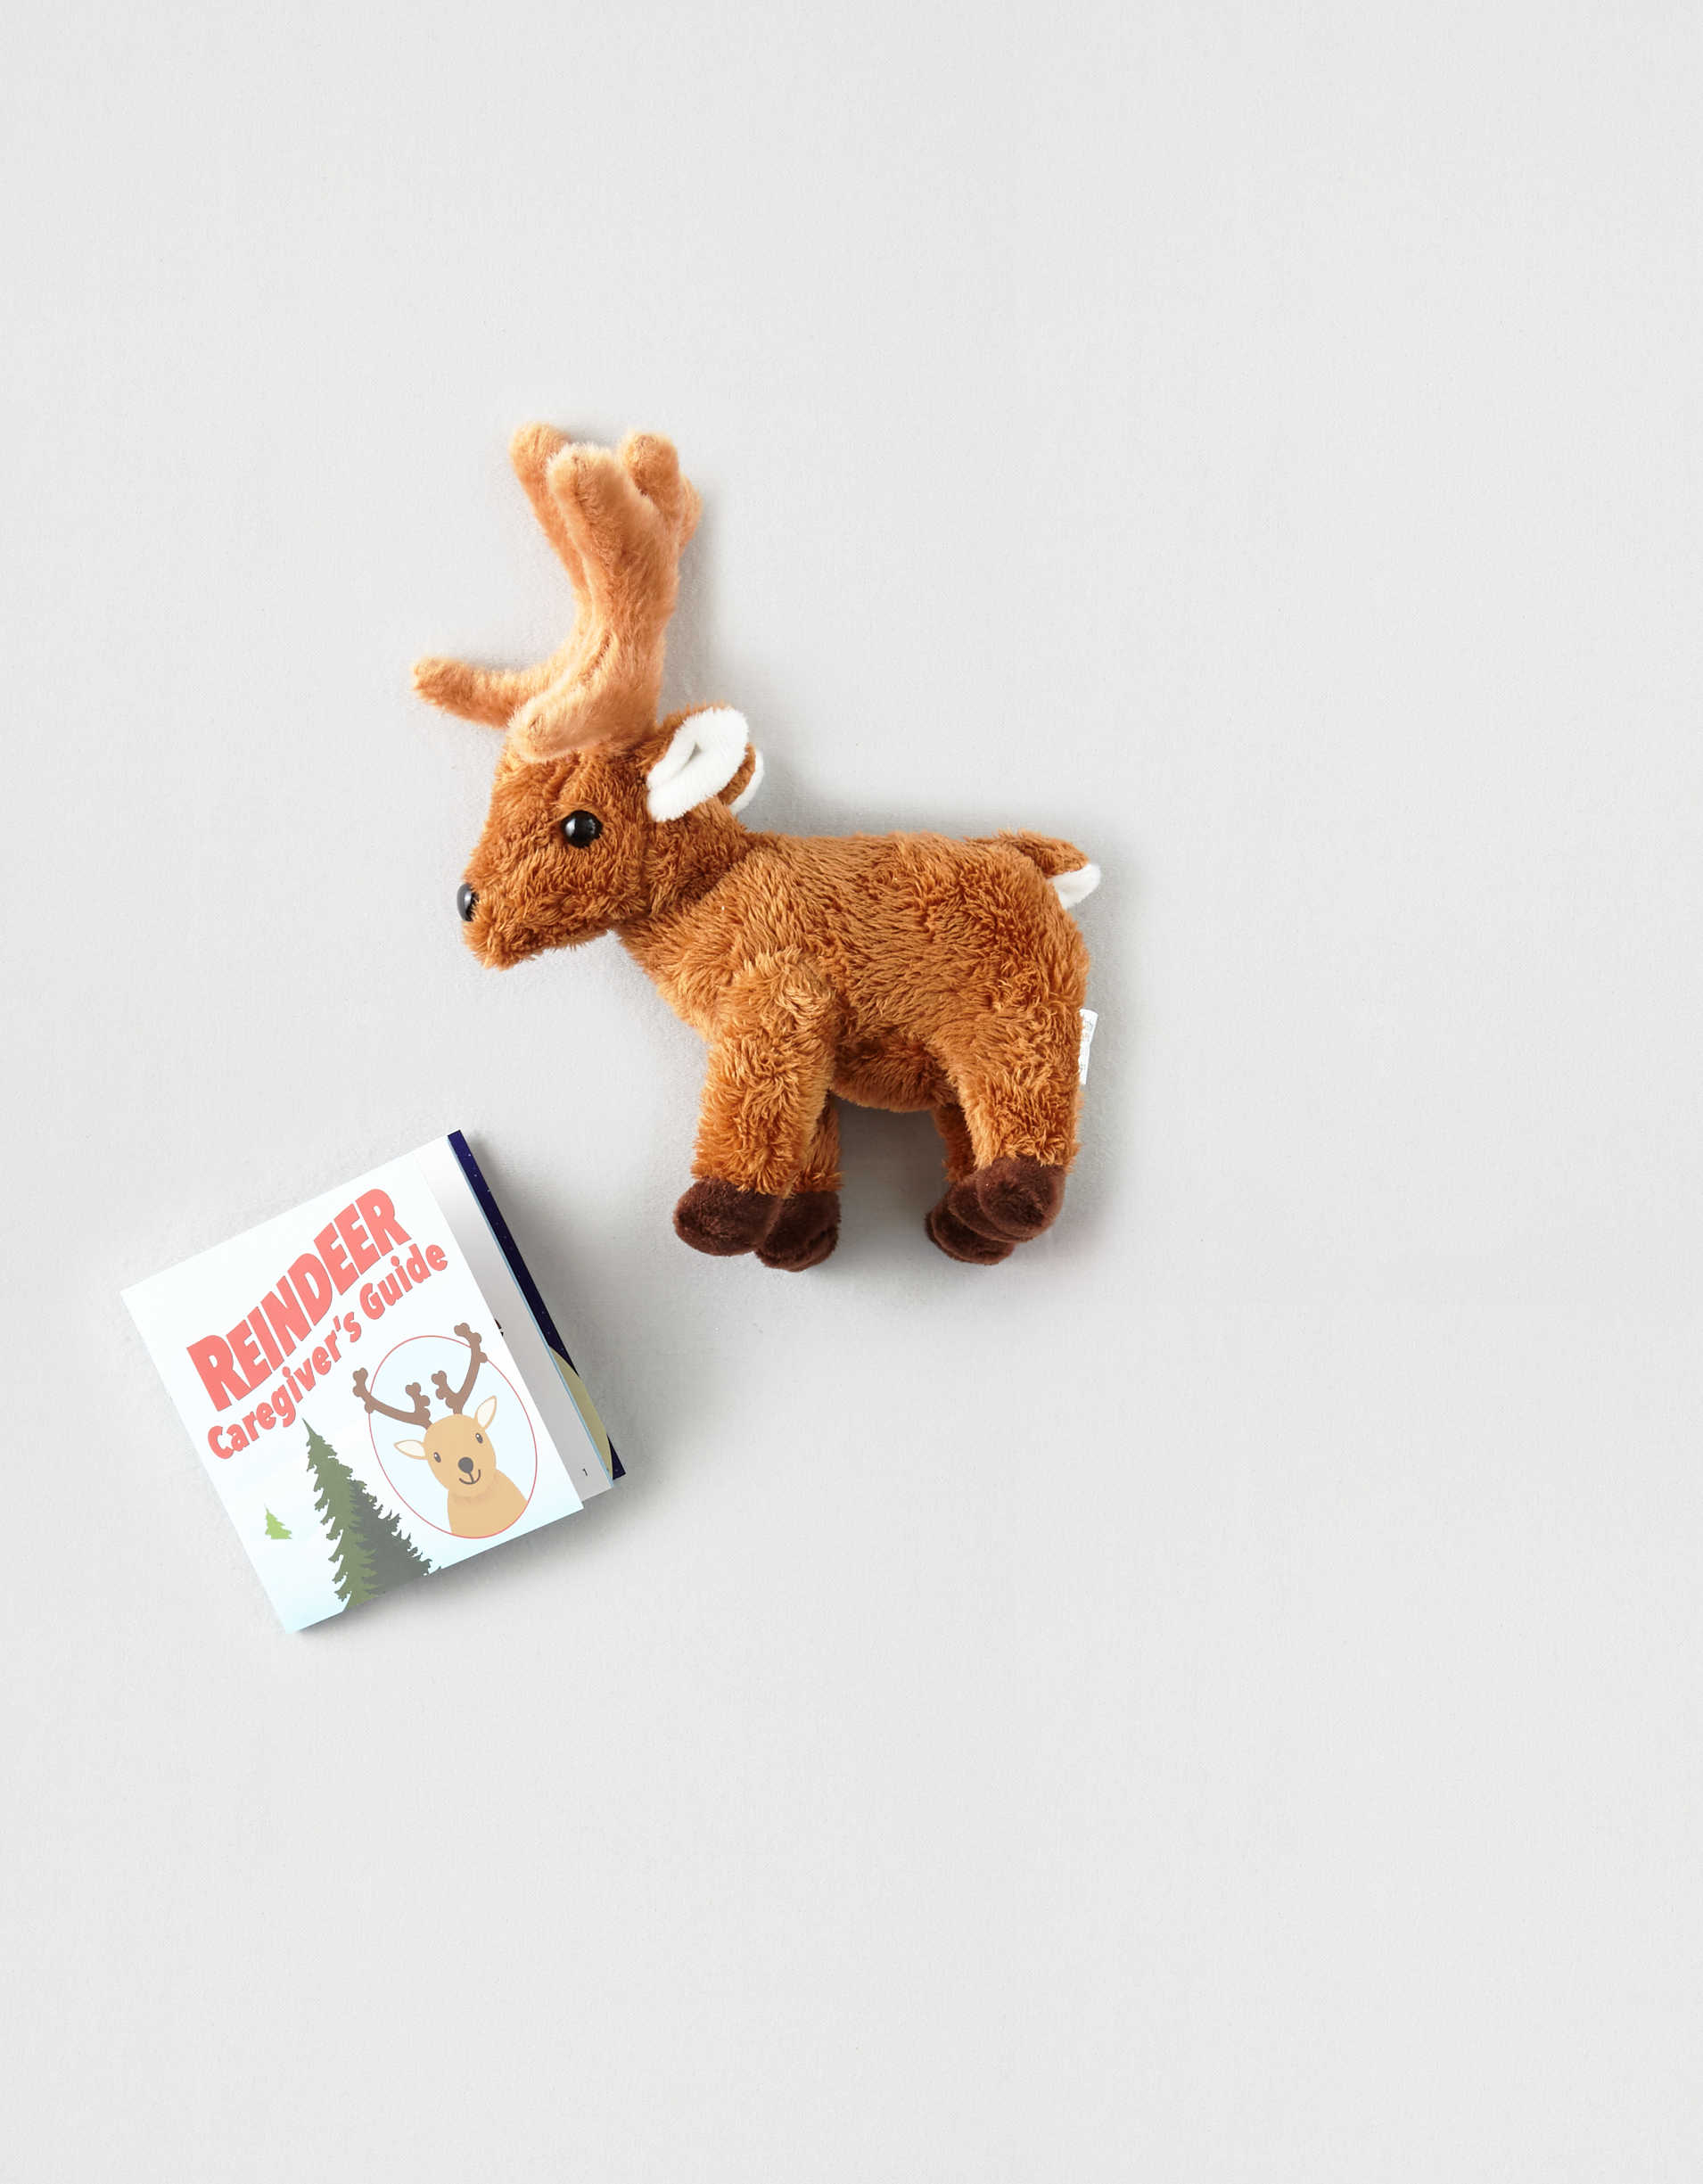 Peter Pauper Reindeer Rescue Kit